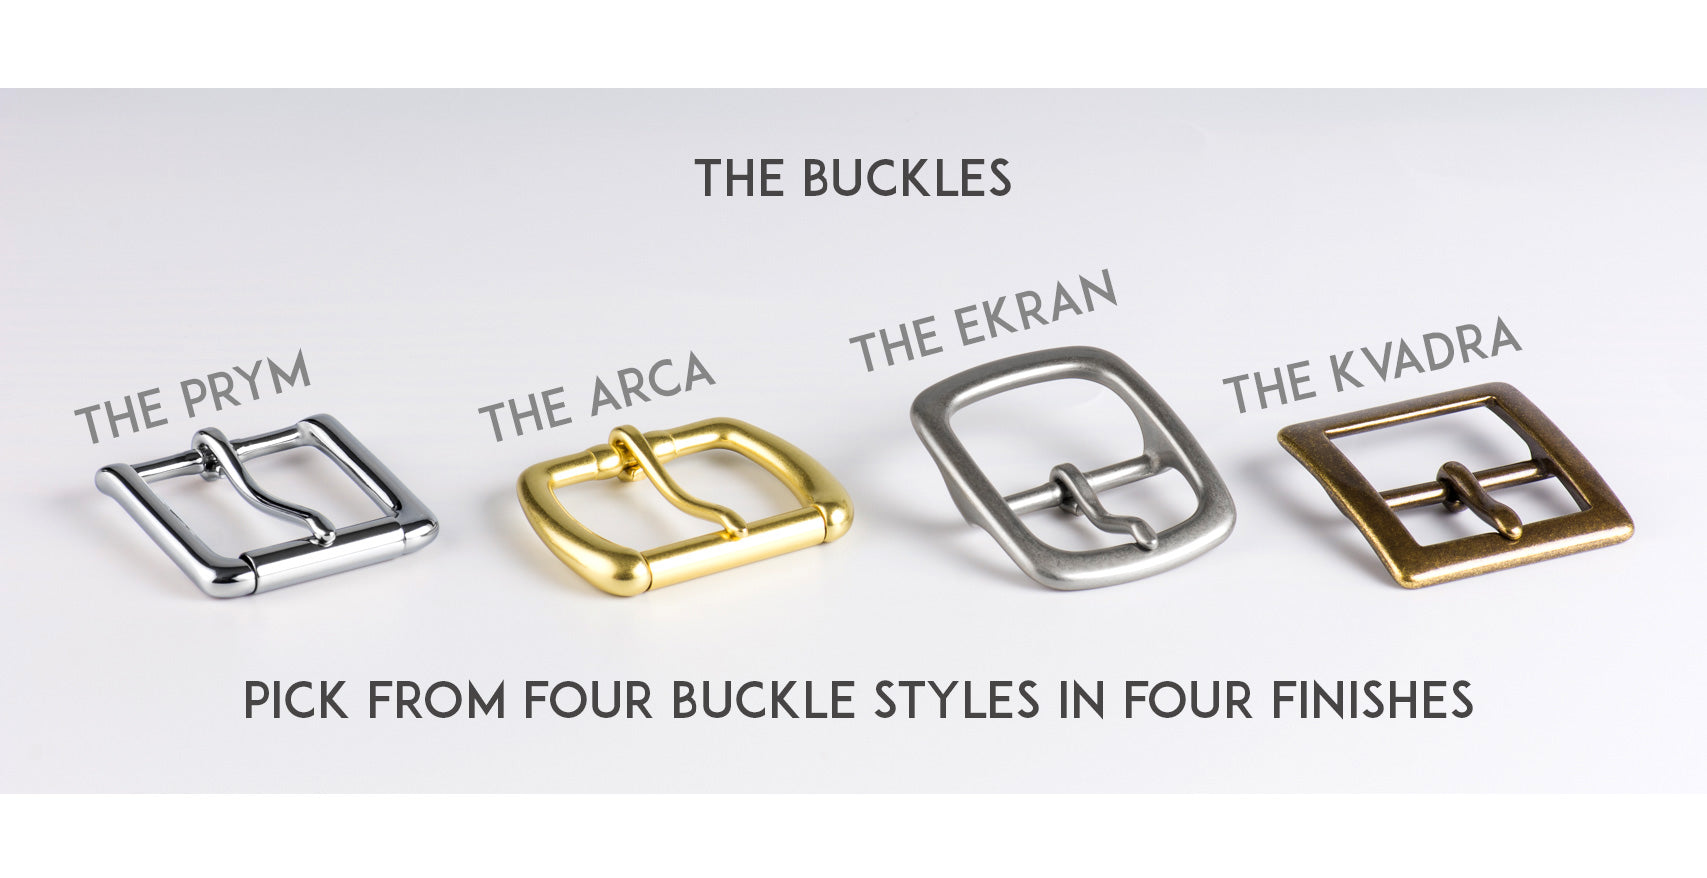 Buckle Styles